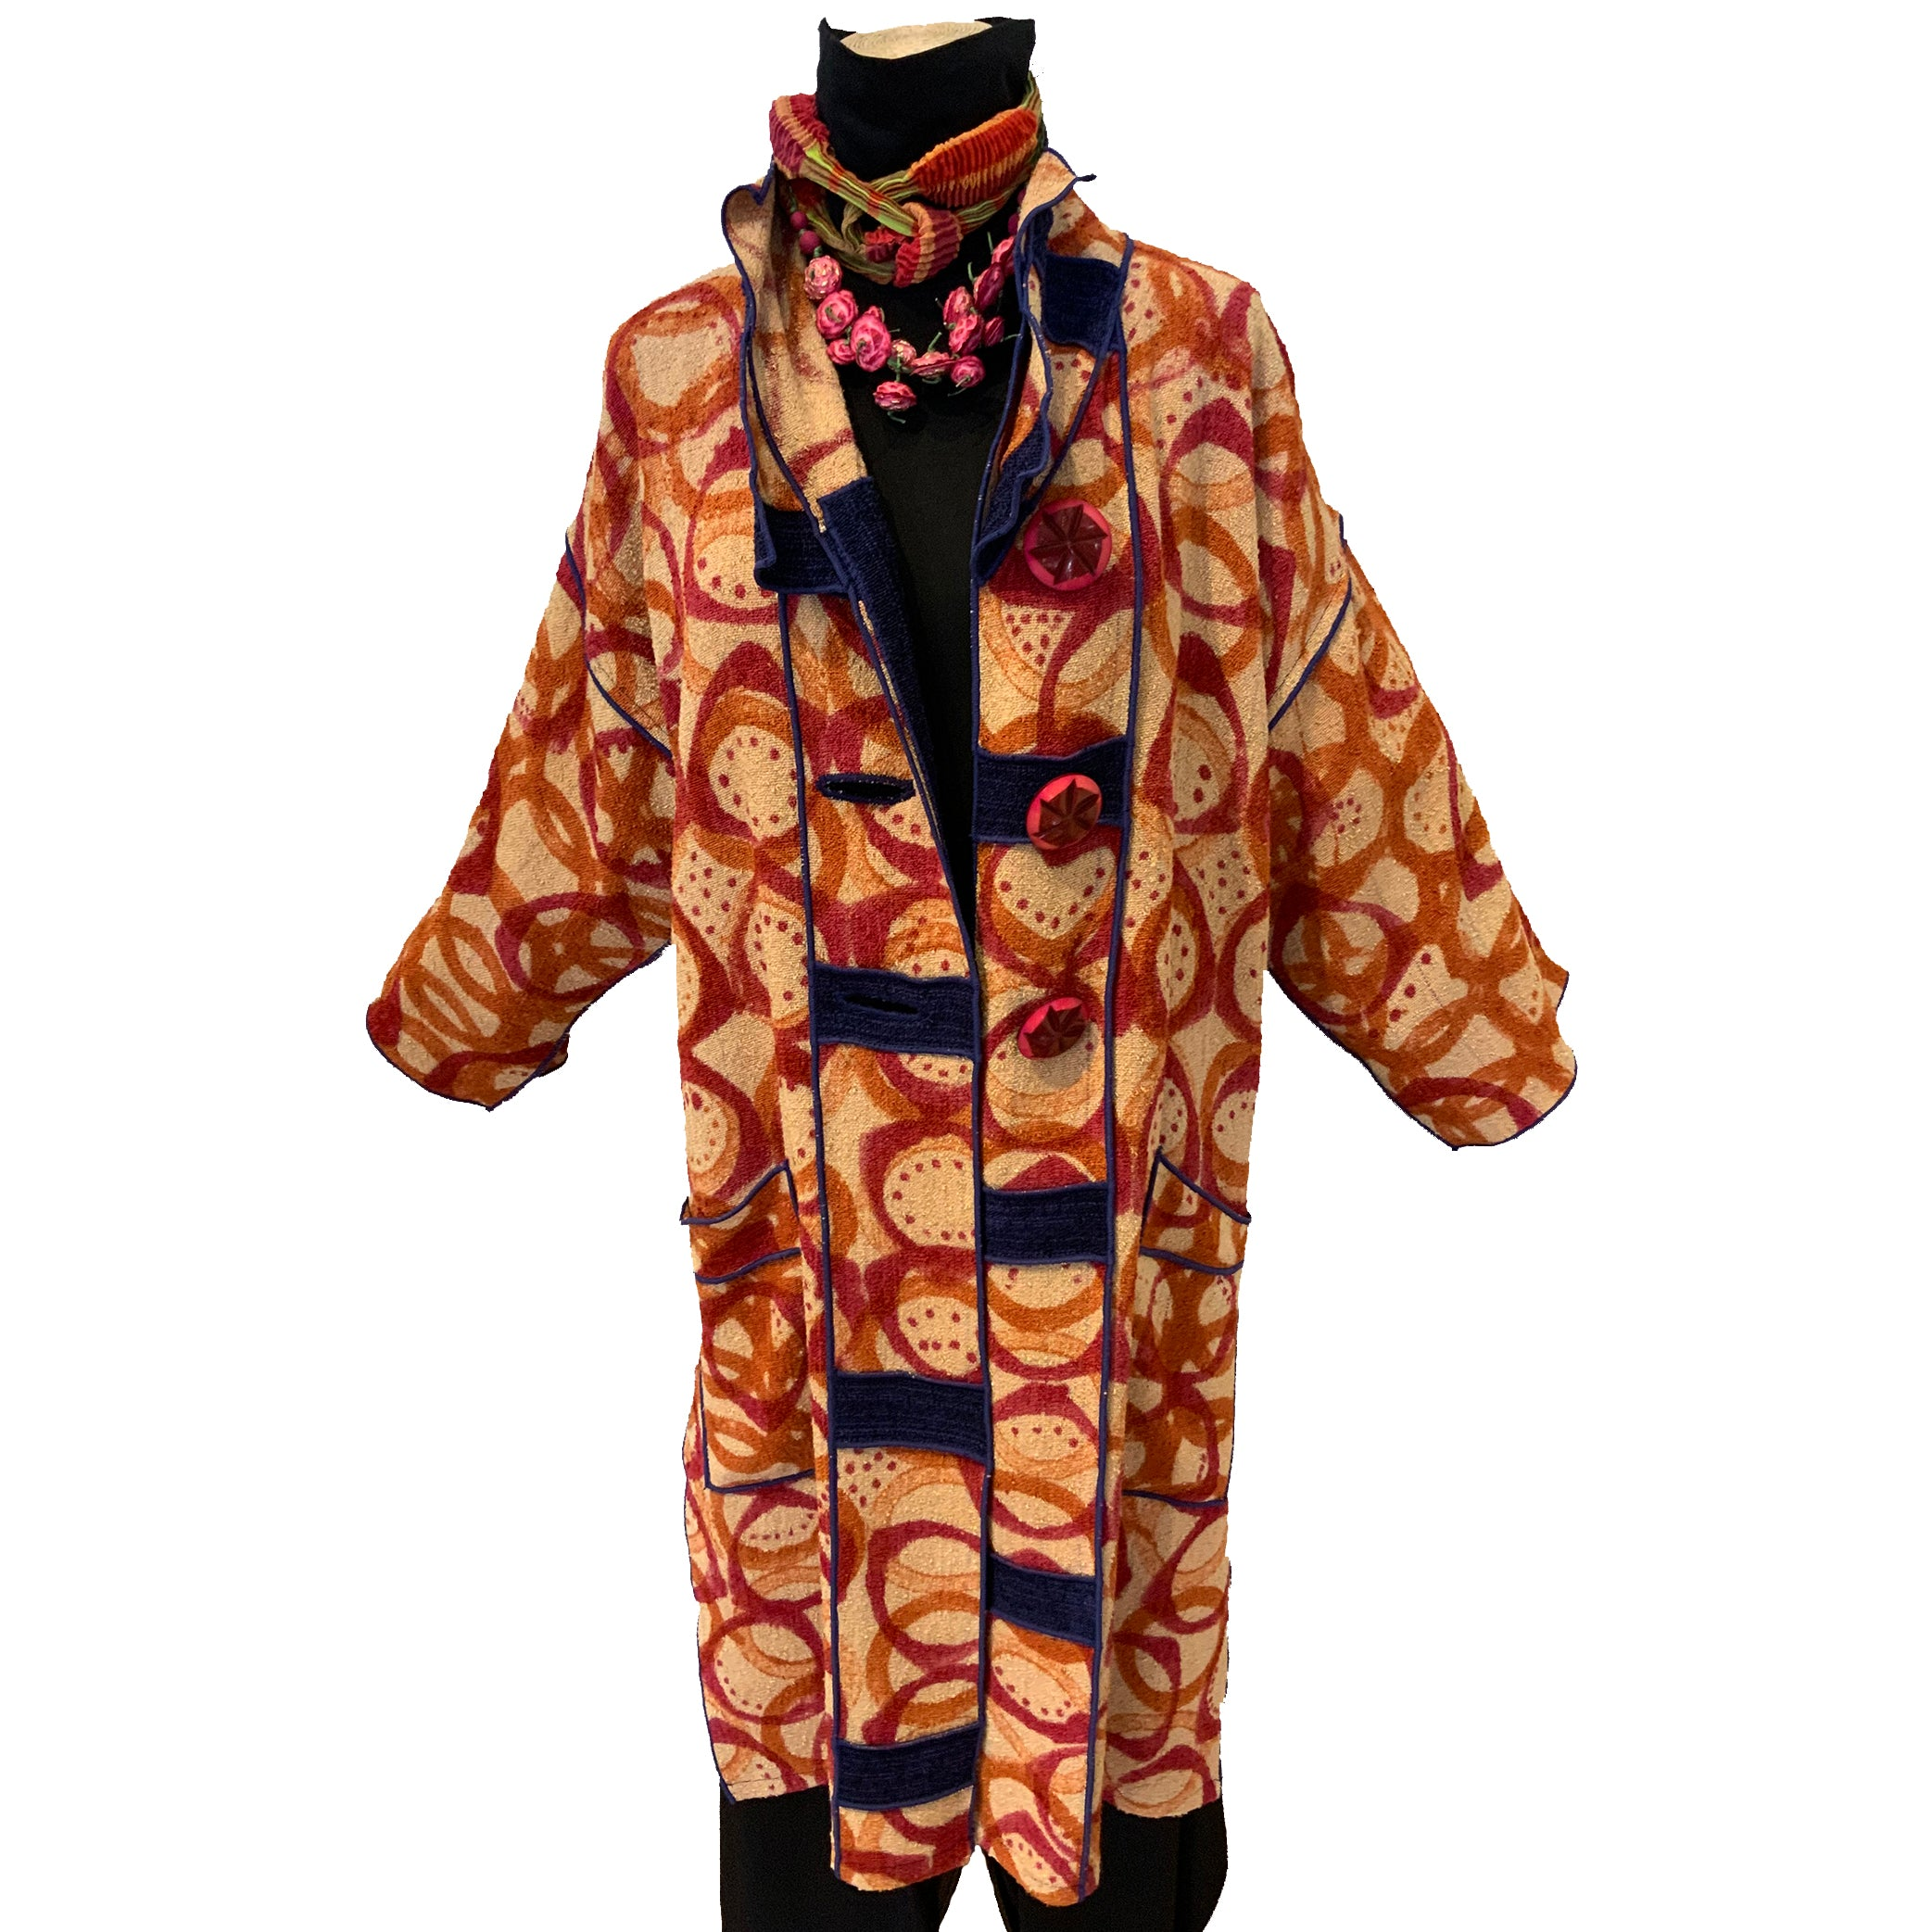 Judith Bird Coat, Kelp Beaker Print, Red/Orange,M